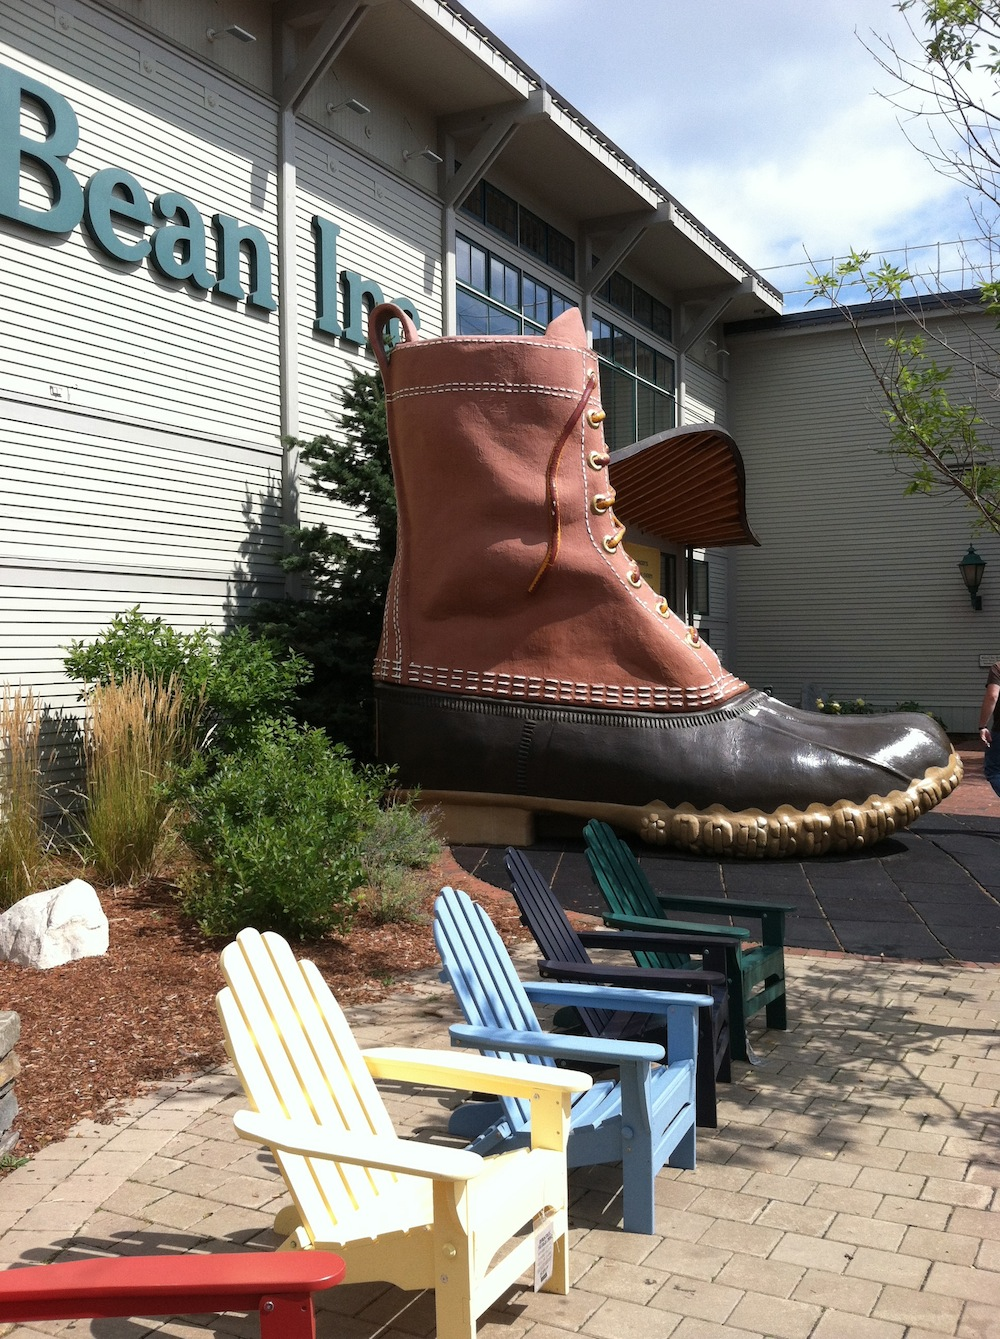 Outside the massive flagship L.L. Bean store